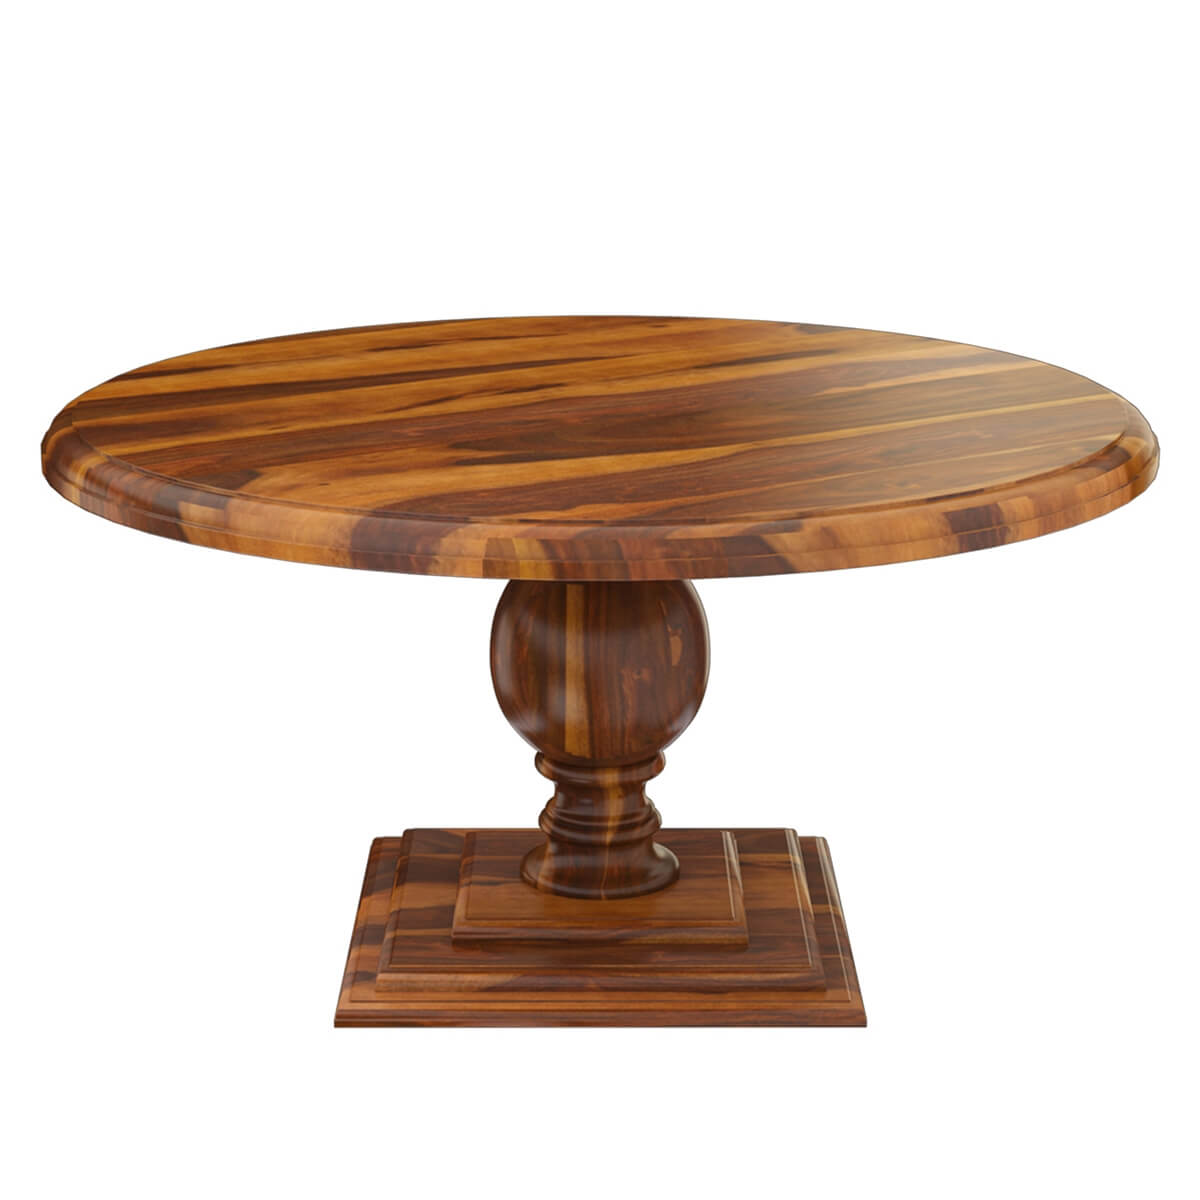 Smoke Circles Mango Wood 54 Round Dining Table W Pedestal Base